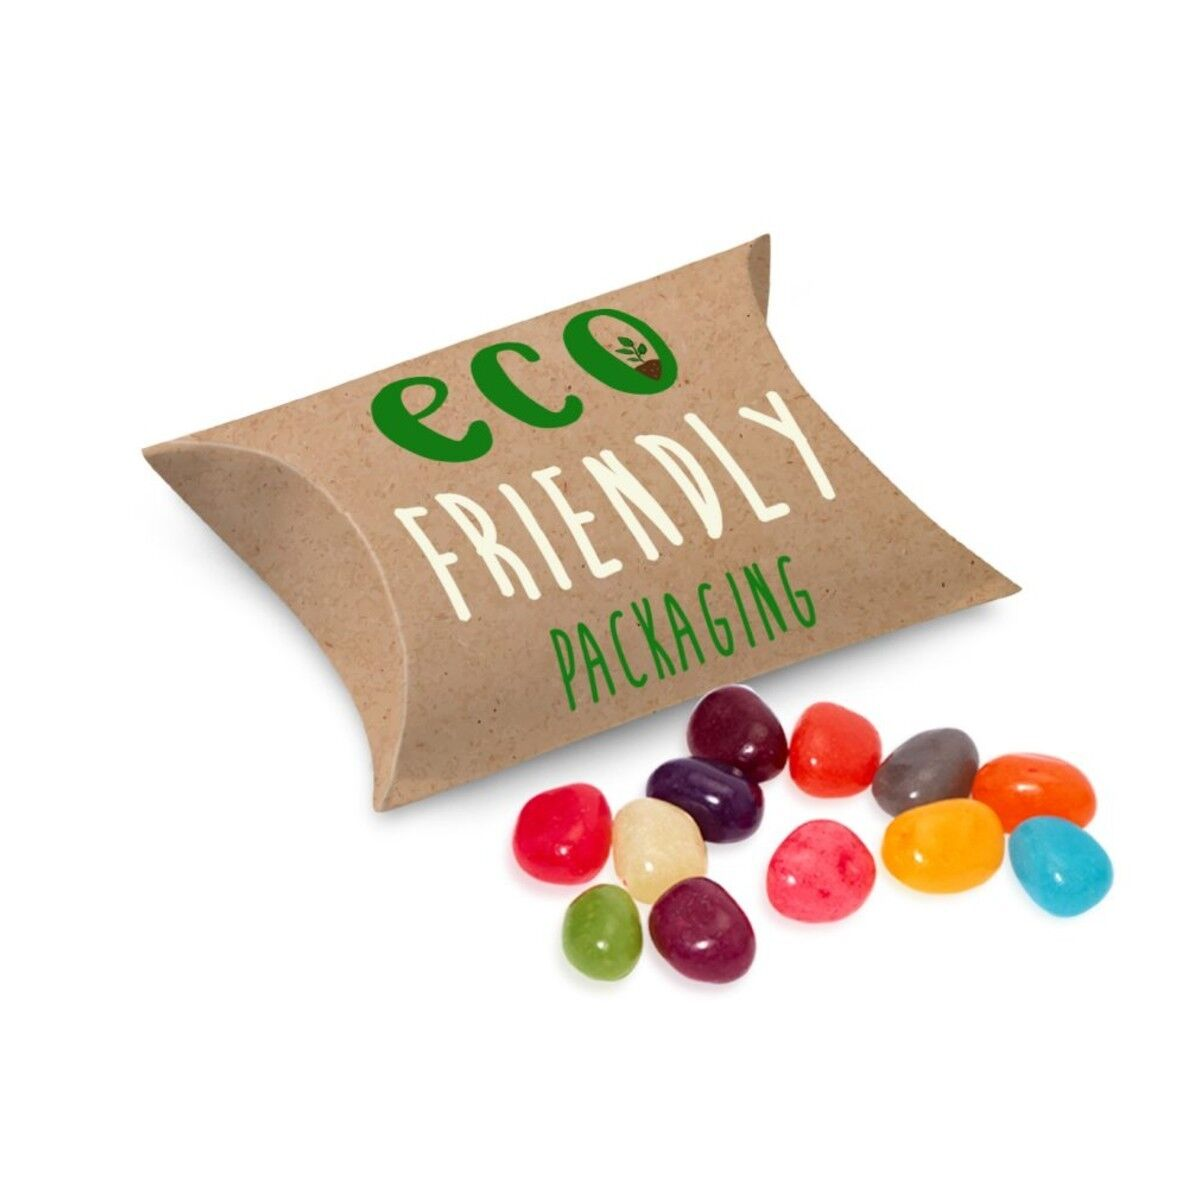 Biodegradable Card Pouch filled with The Jelly Bean Factory